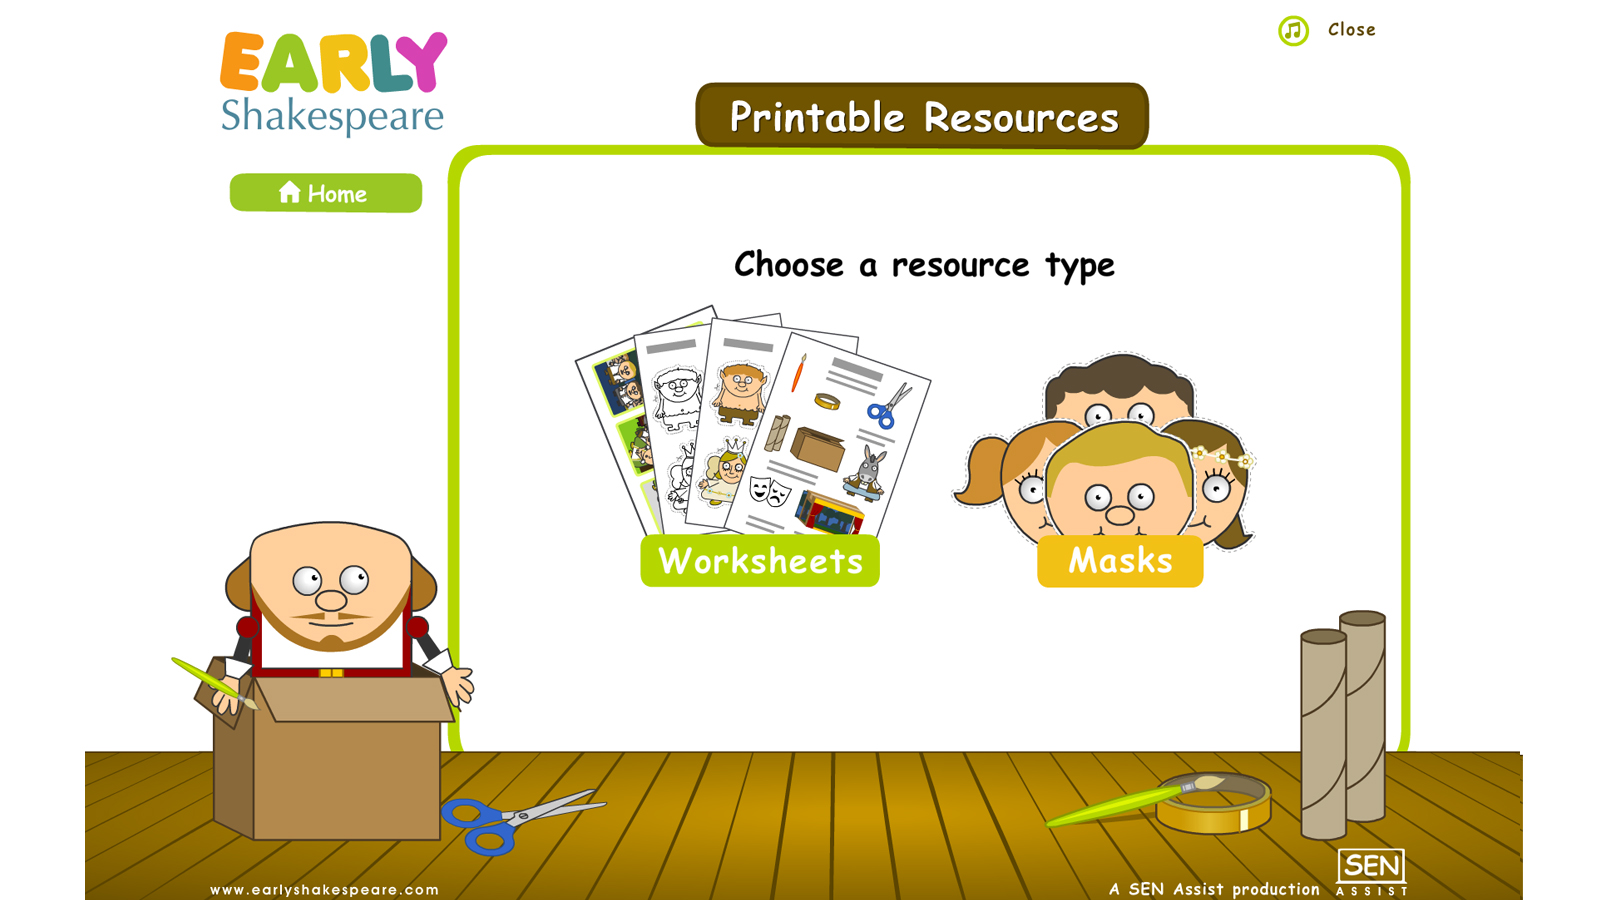 Workbooks shakespeare worksheets : Early Shakespeare summary page - London Grid for Learning